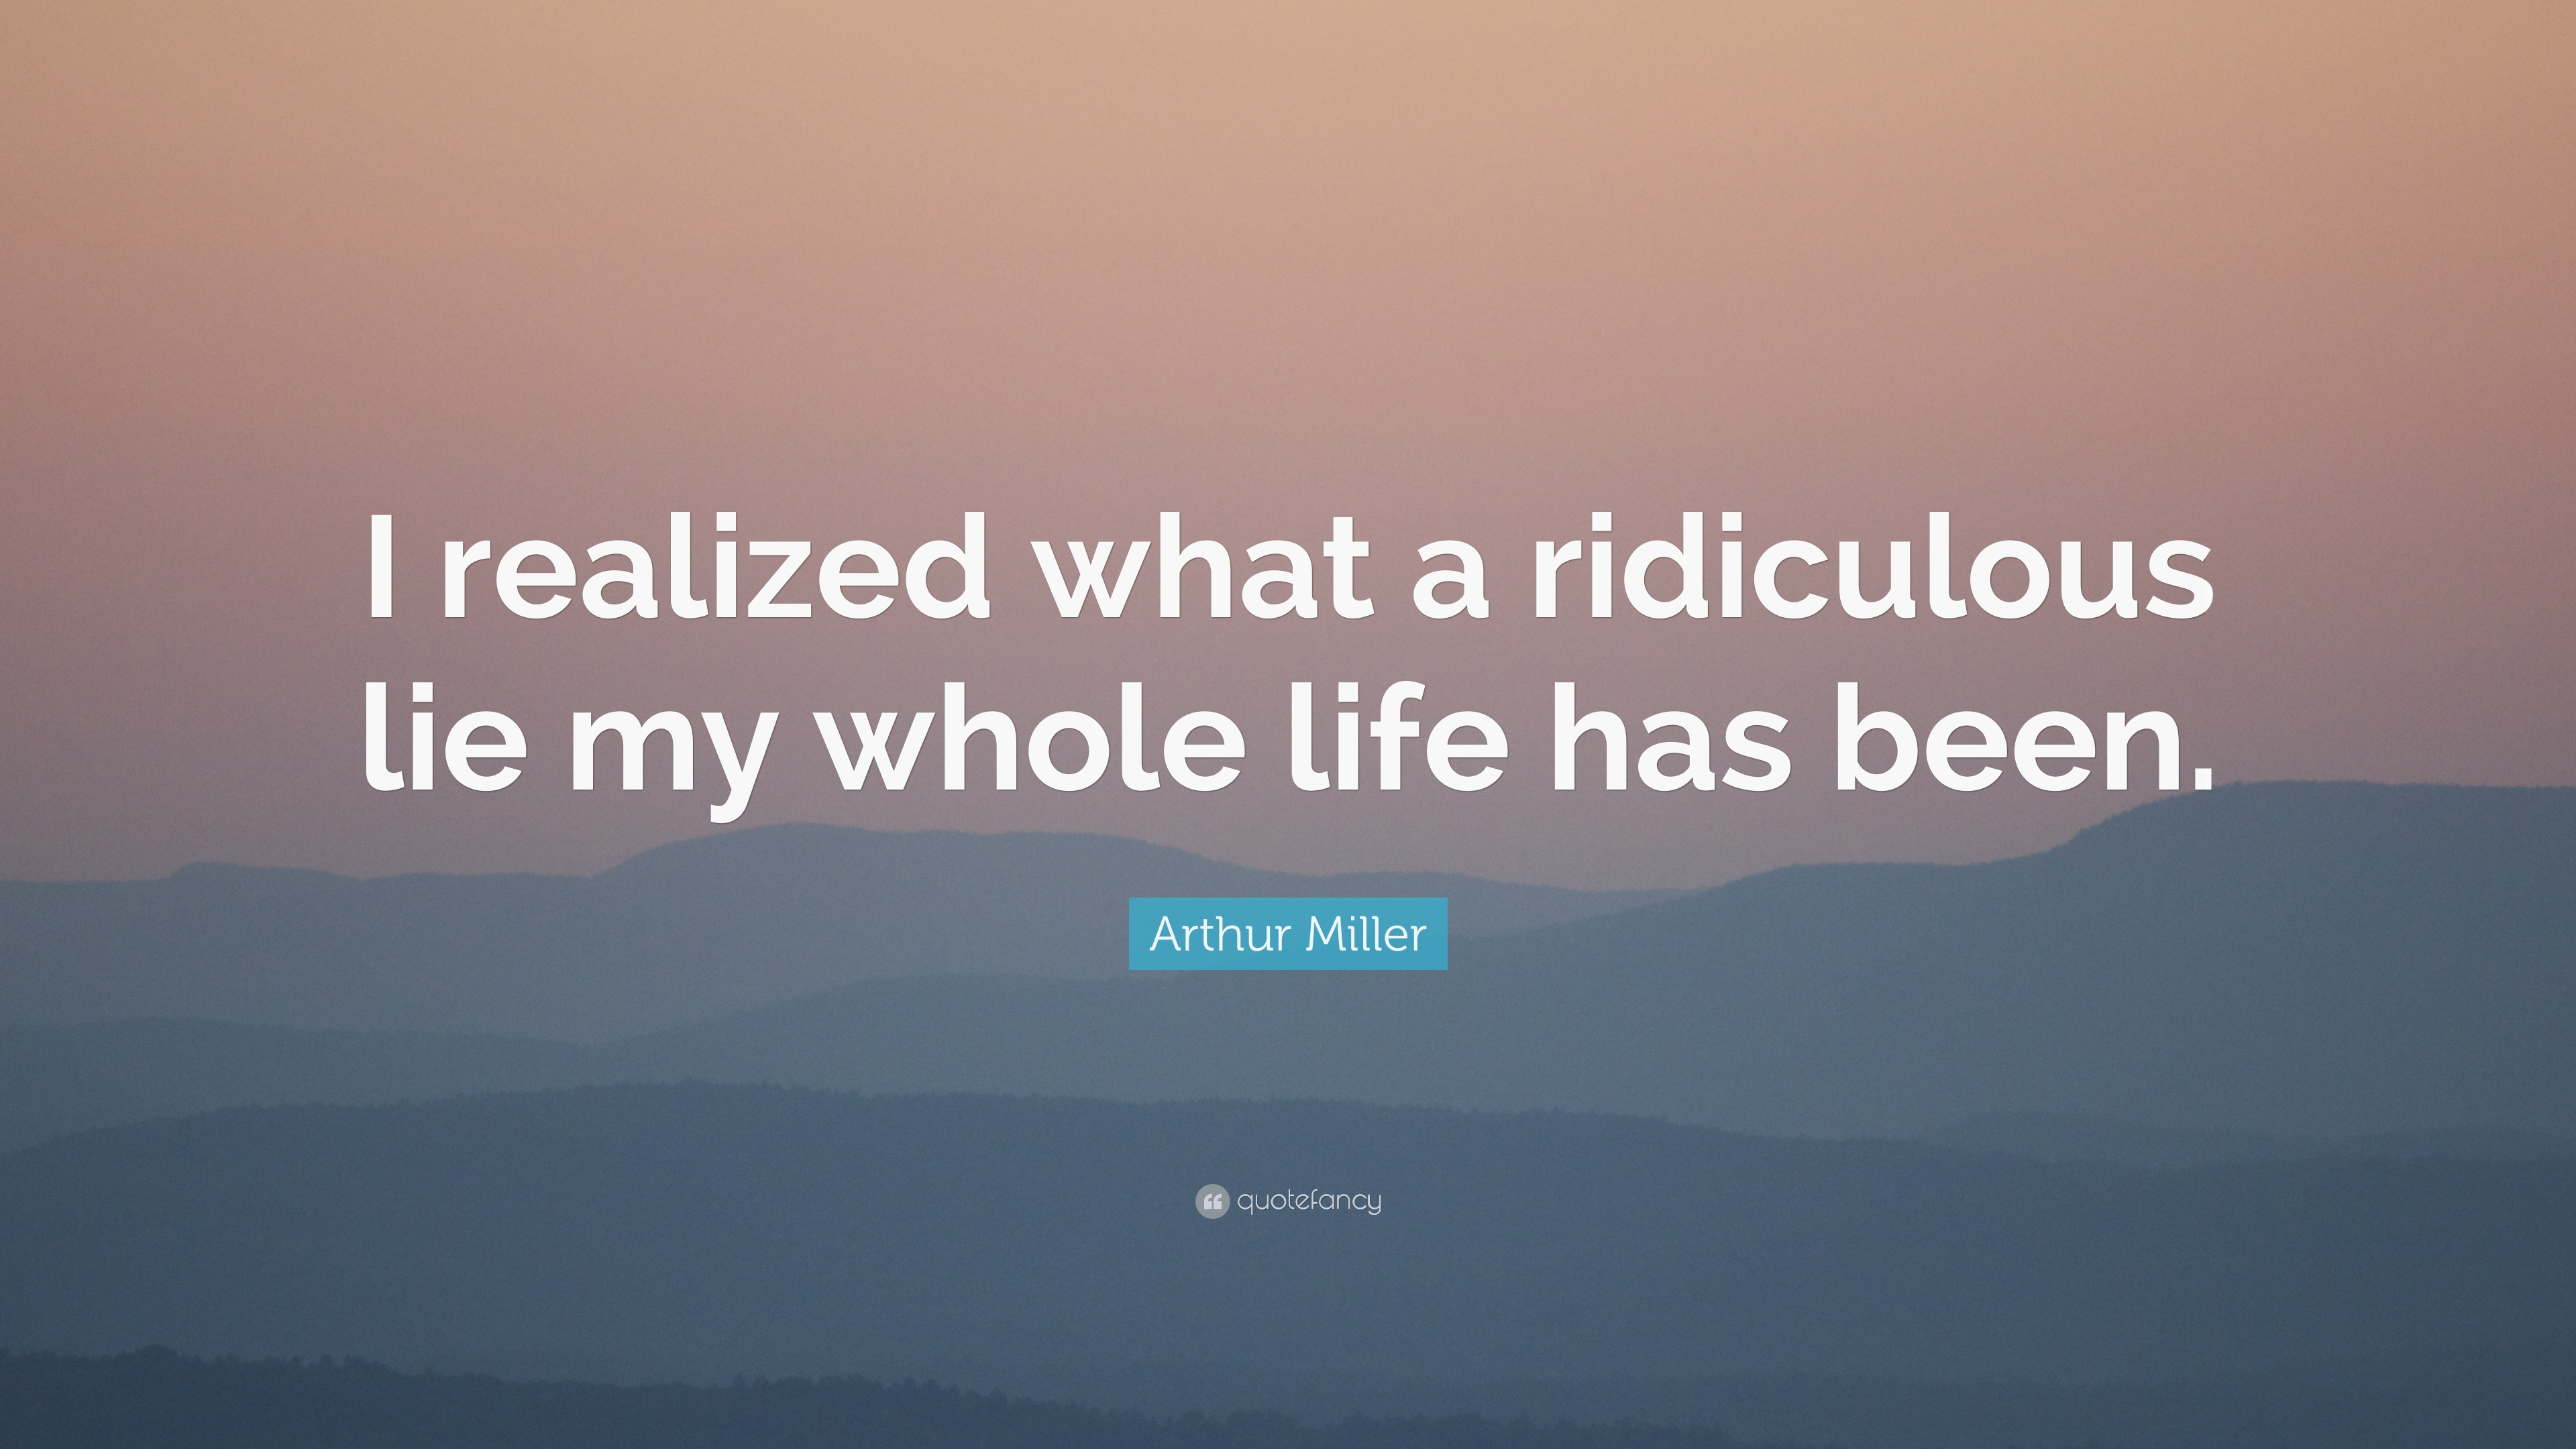 Arthur Miller Quote: U201cI Realized What A Ridiculous Lie My Whole Life Has  Been